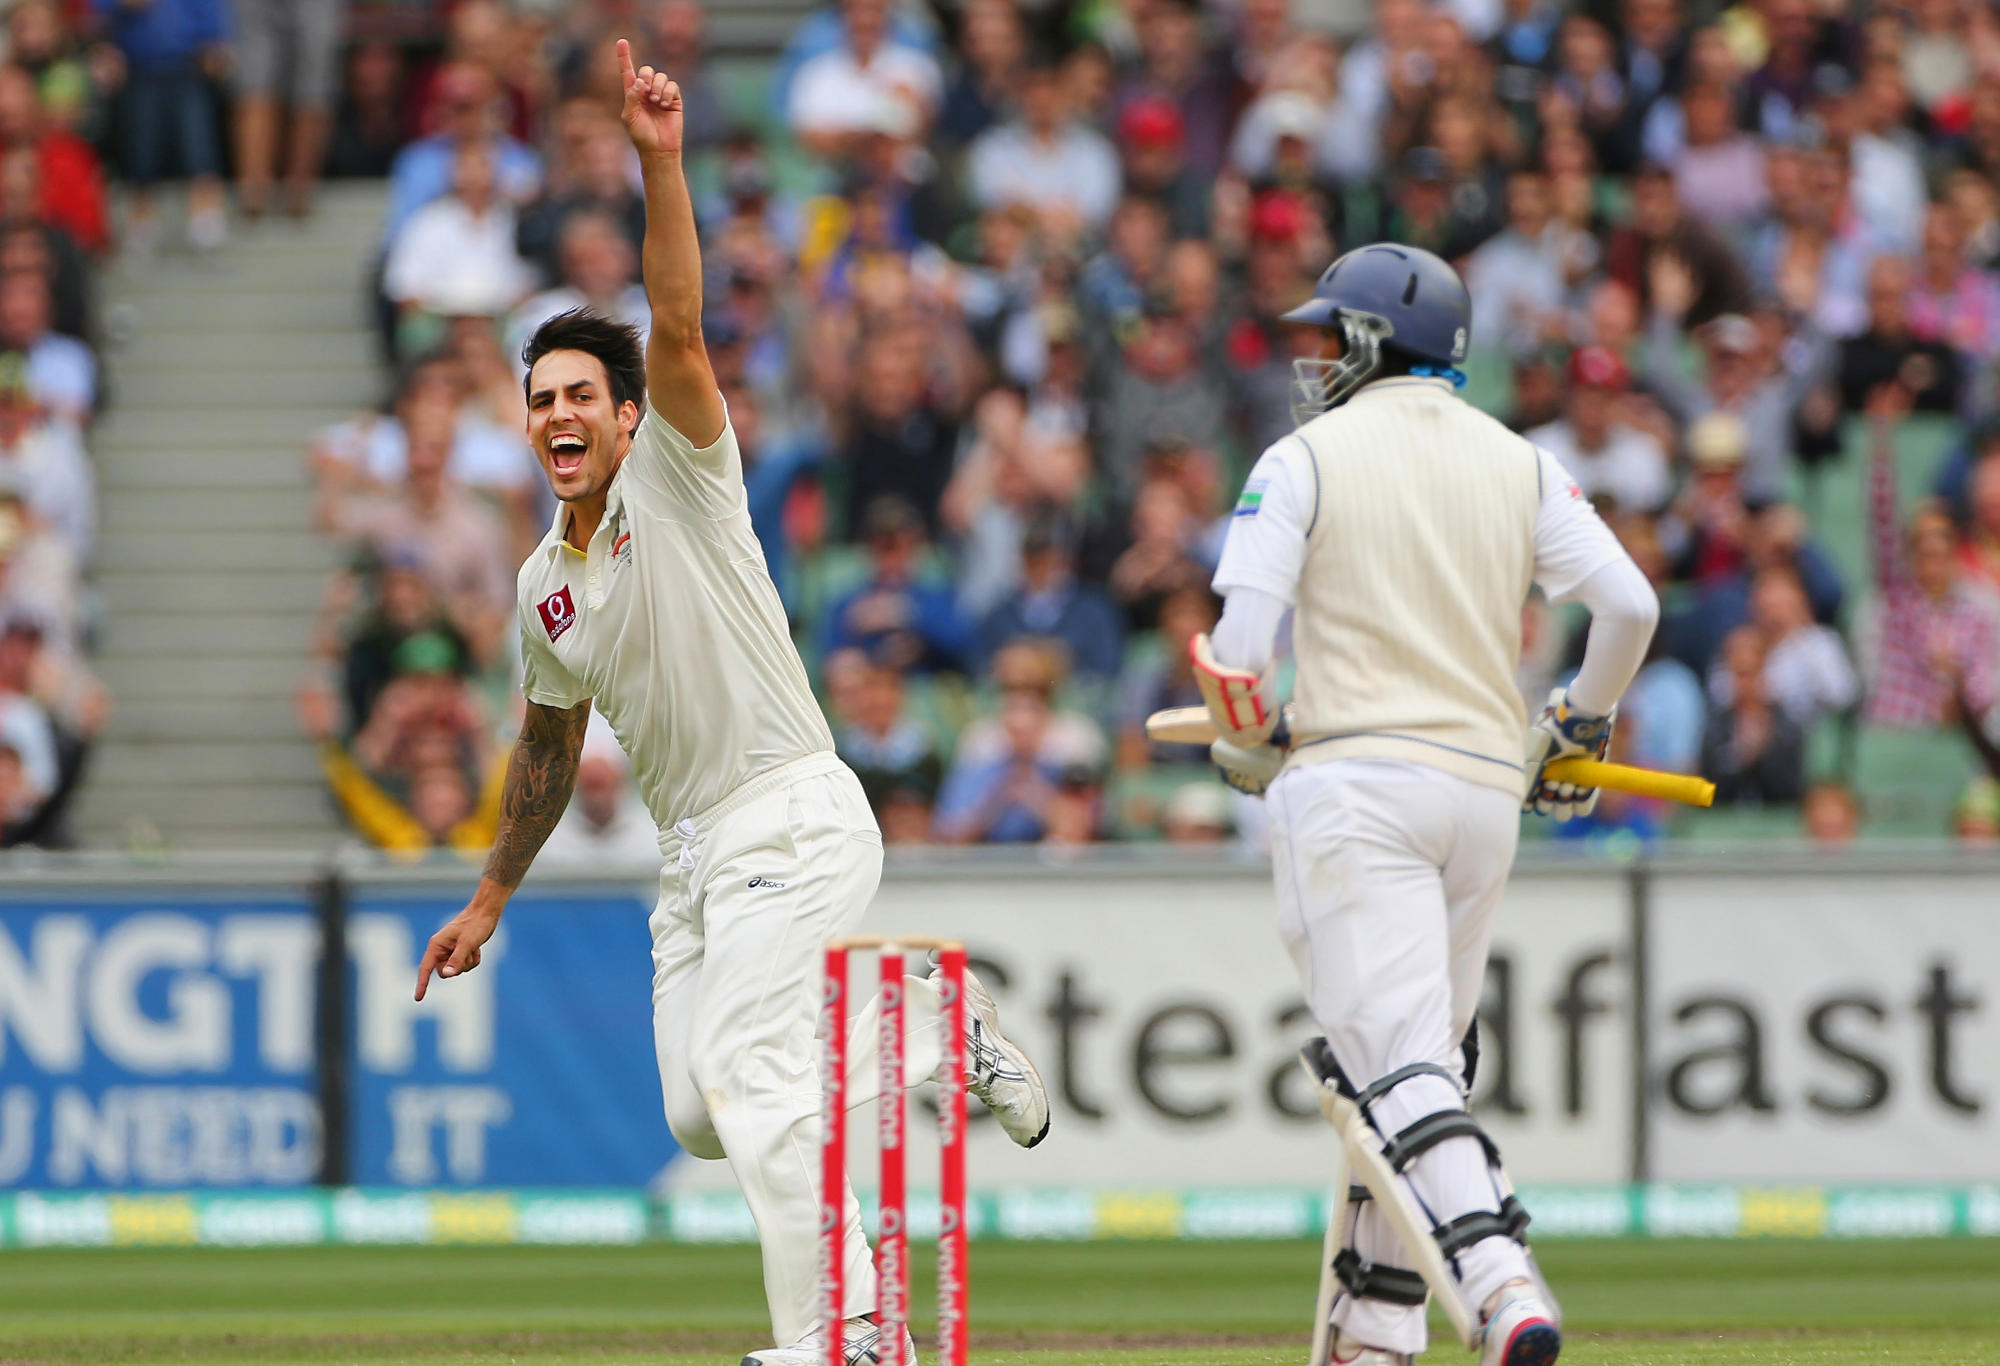 Mitchell Johnson of Australia celebrates after dismissing Tillakaratne Dilshan